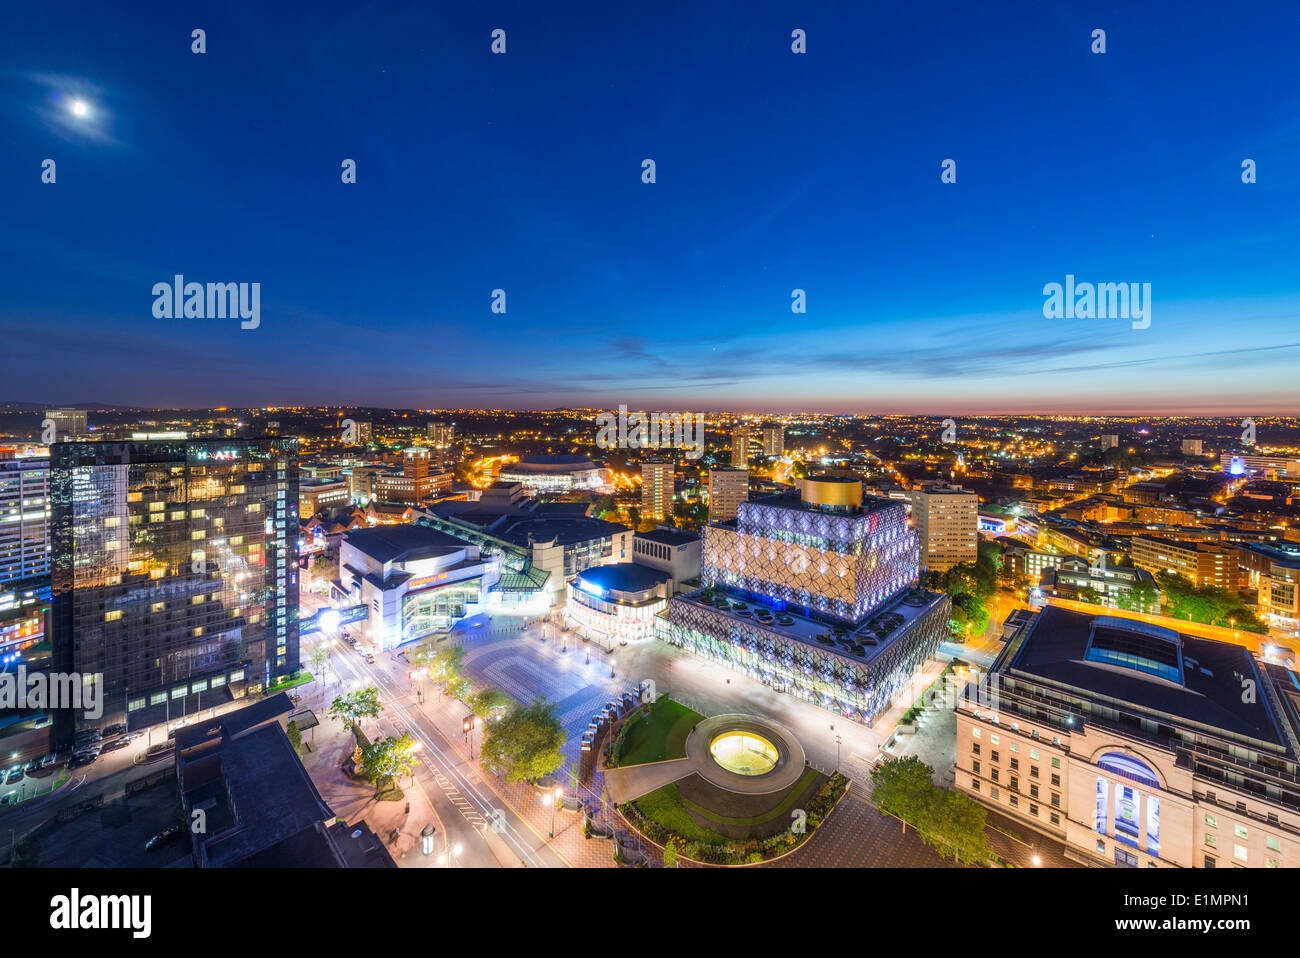 A night view of Birmingham city centre at night, showing Centenary Square and the new library of Birmingham. - Stock Image